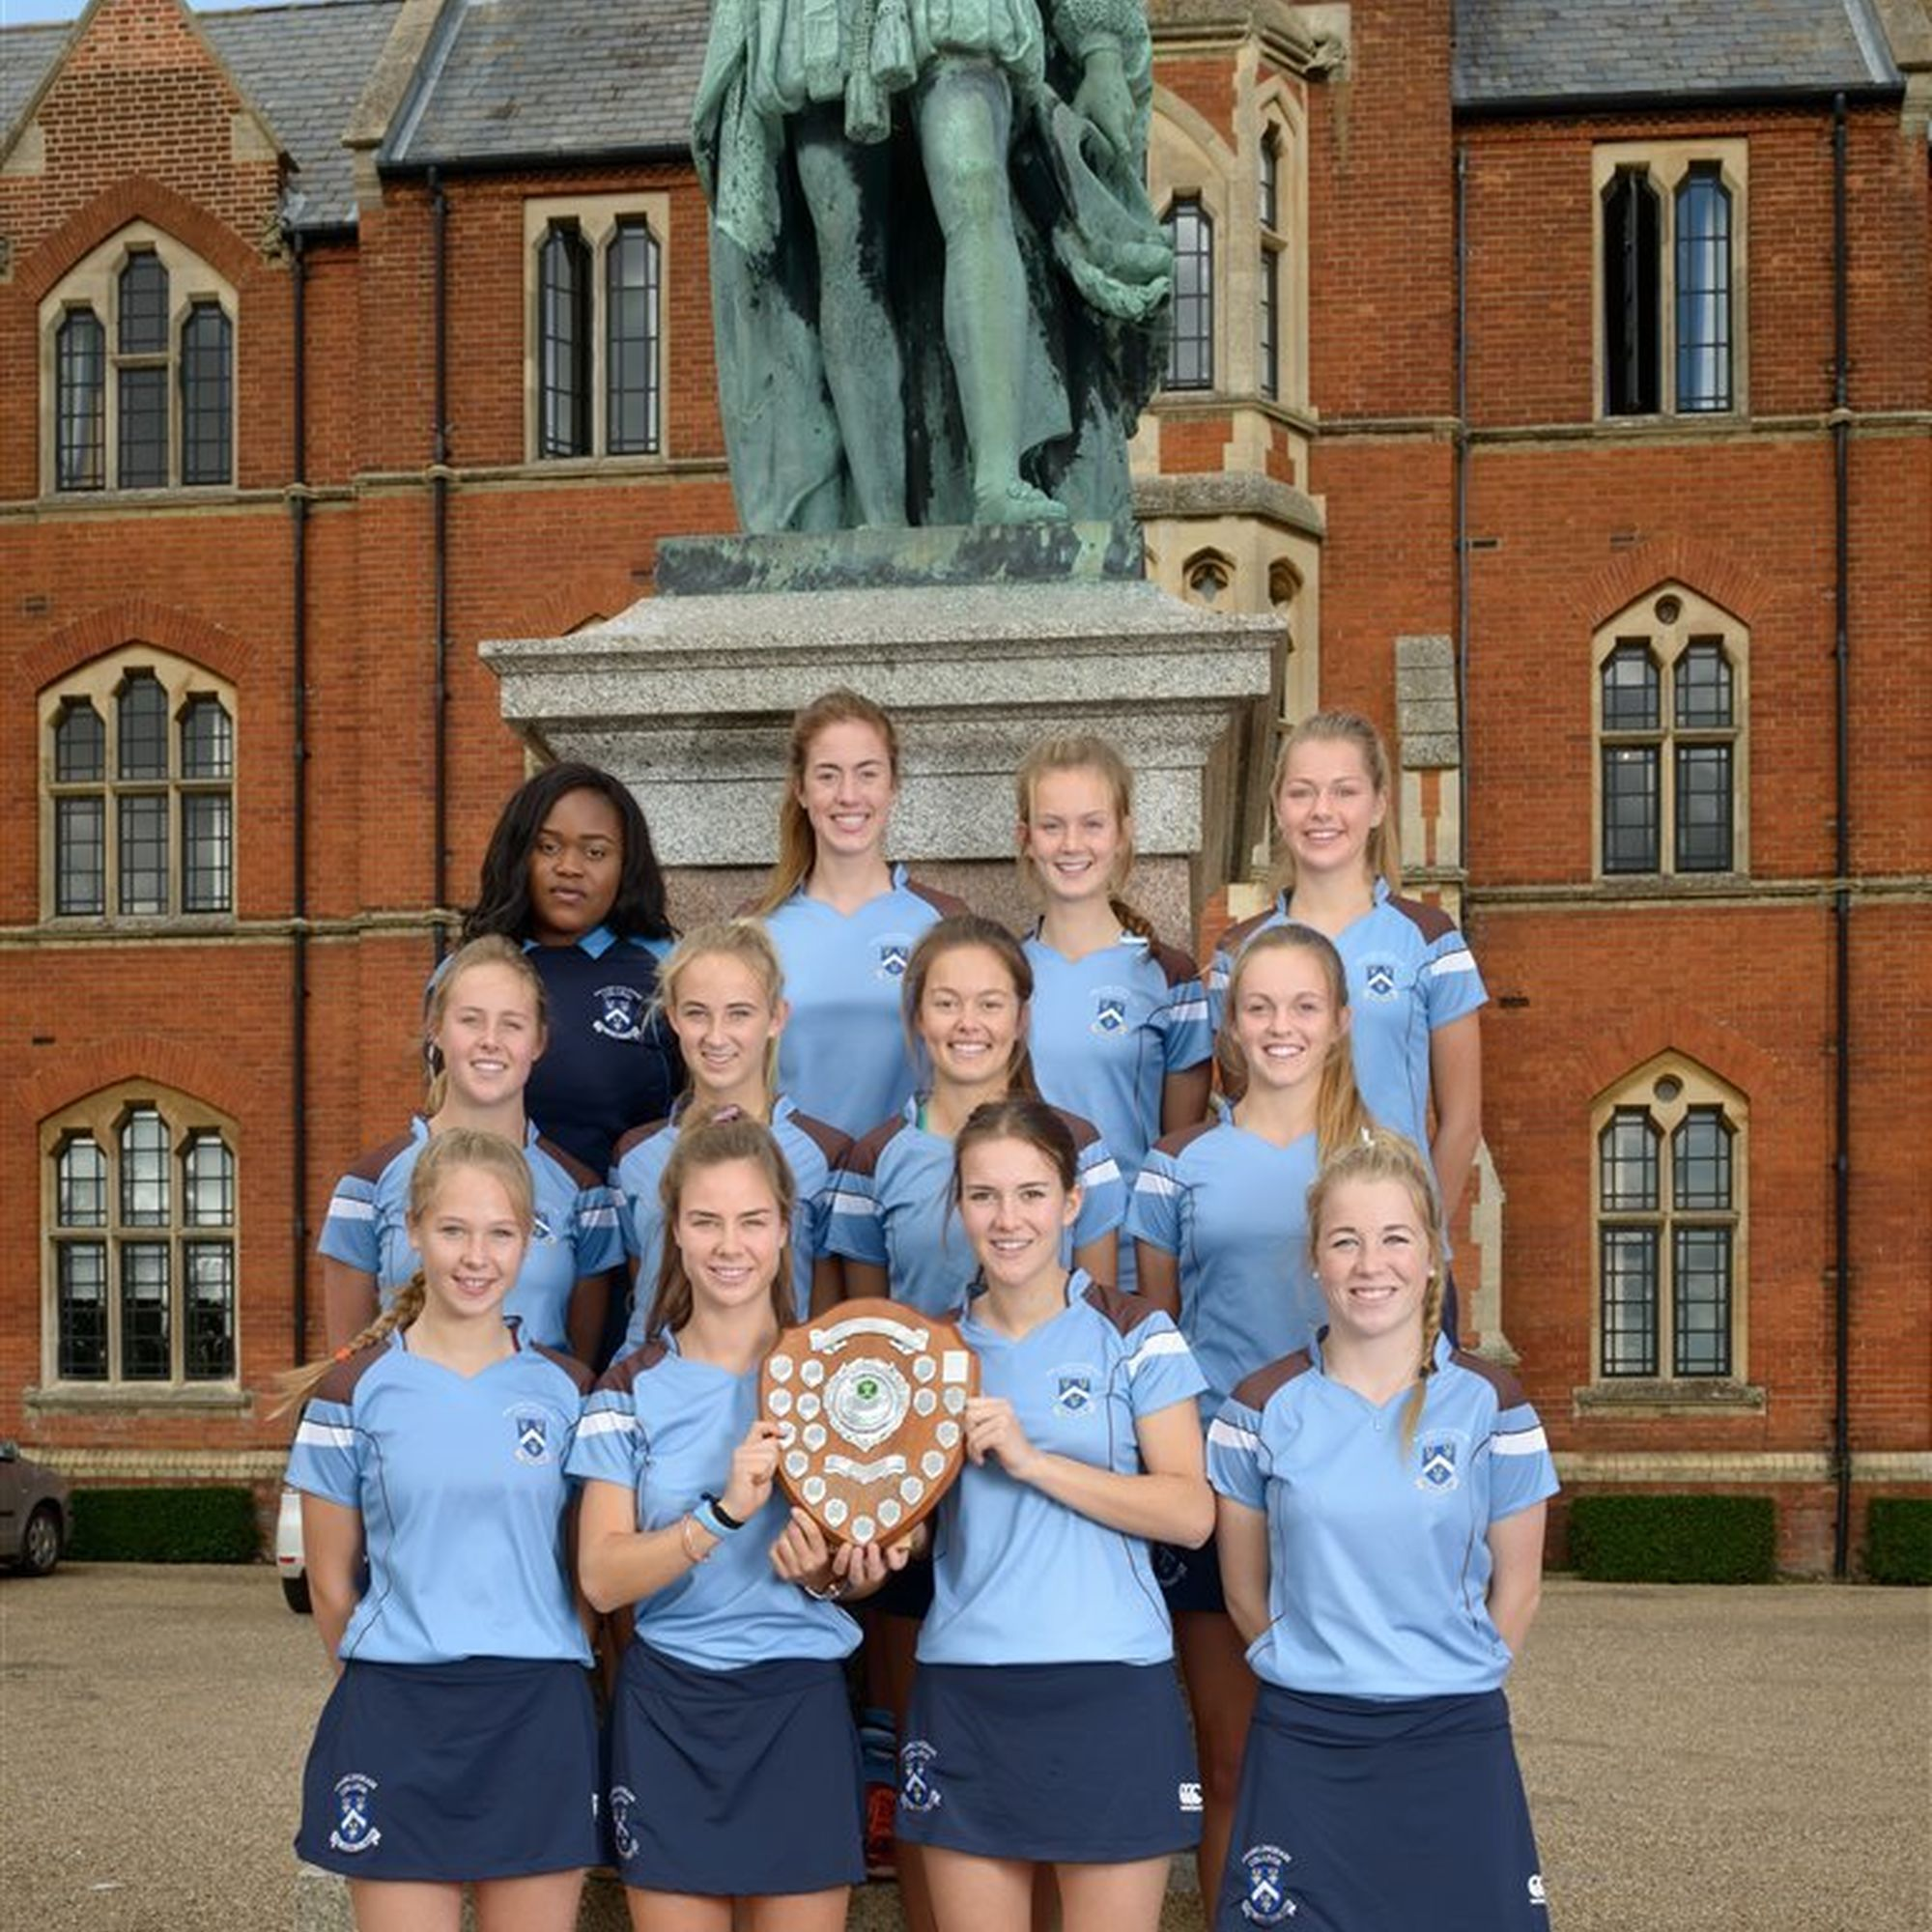 Frahmlingham college hockey exhange st marys julia fleming can be seen in the middle row left